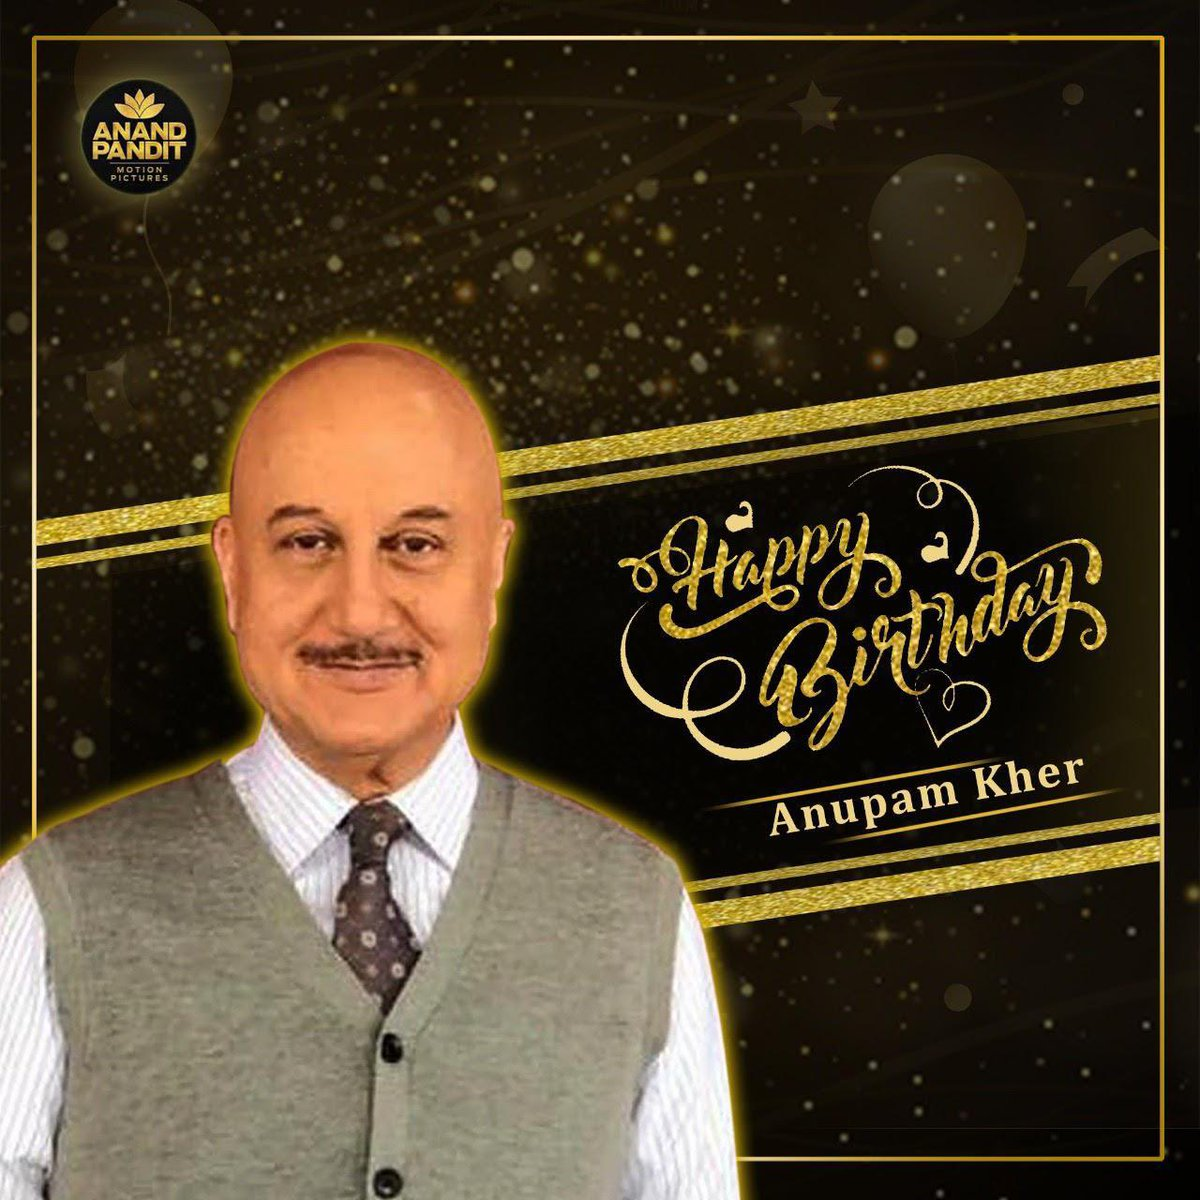 Happy birthday to one of the most loved figures in Indian cinema @AnupamPKher. May god bless you with abundance!! https://t.co/FnVSdqJQBB